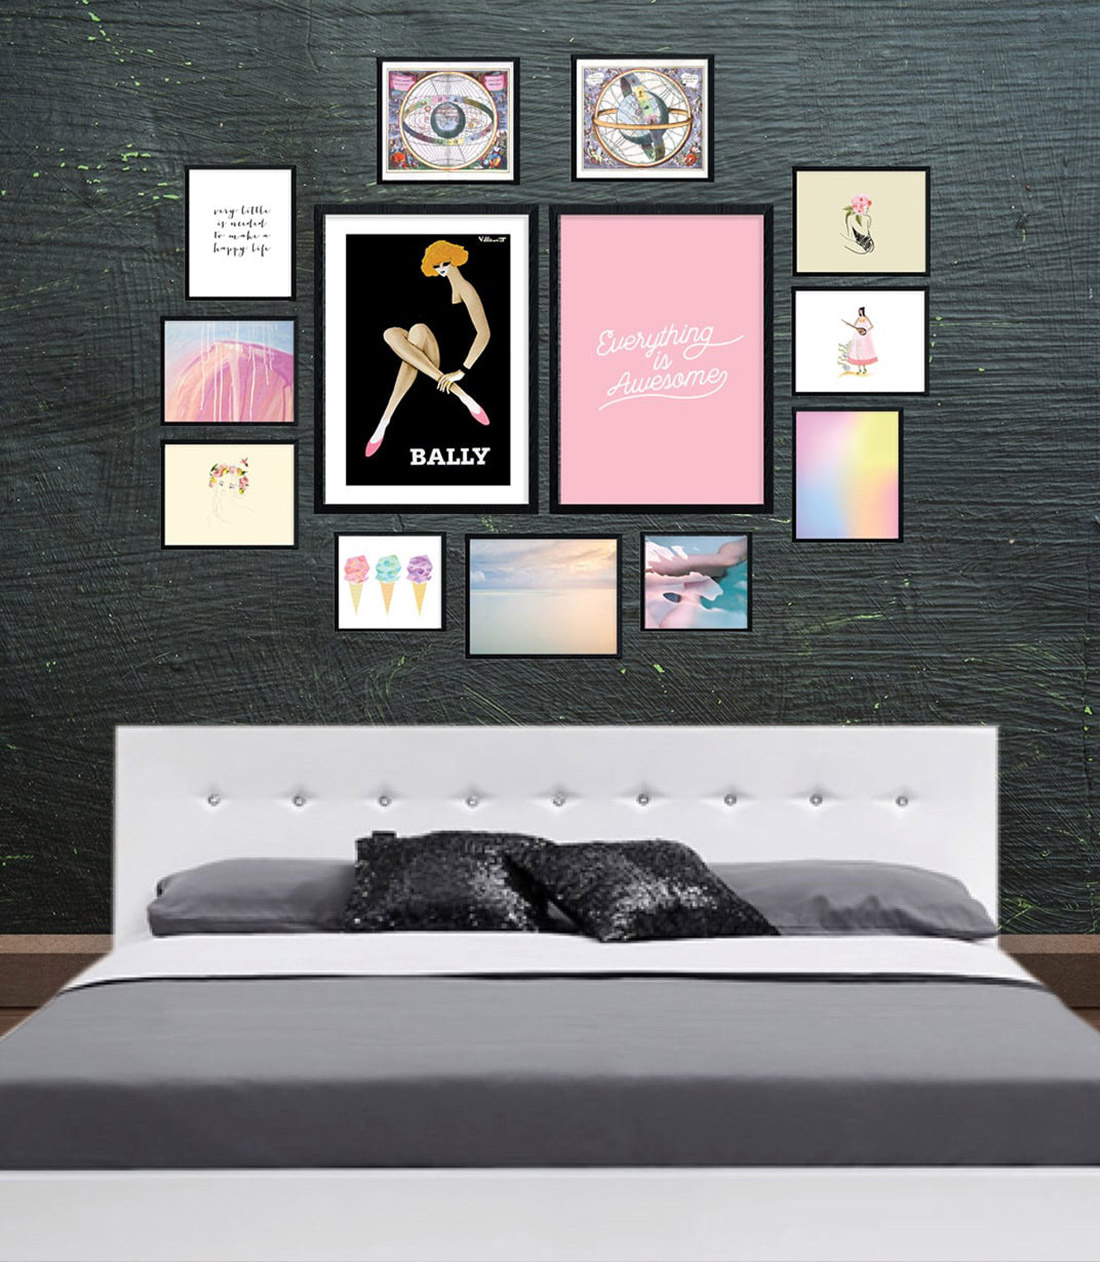 Pretty in Pastel Gallery Wall for an Elegant Bedroom • Frame Game isanoccasional series in which I take readers' gallery wall requests and find art that fits their personalities •Little Gold Pixel